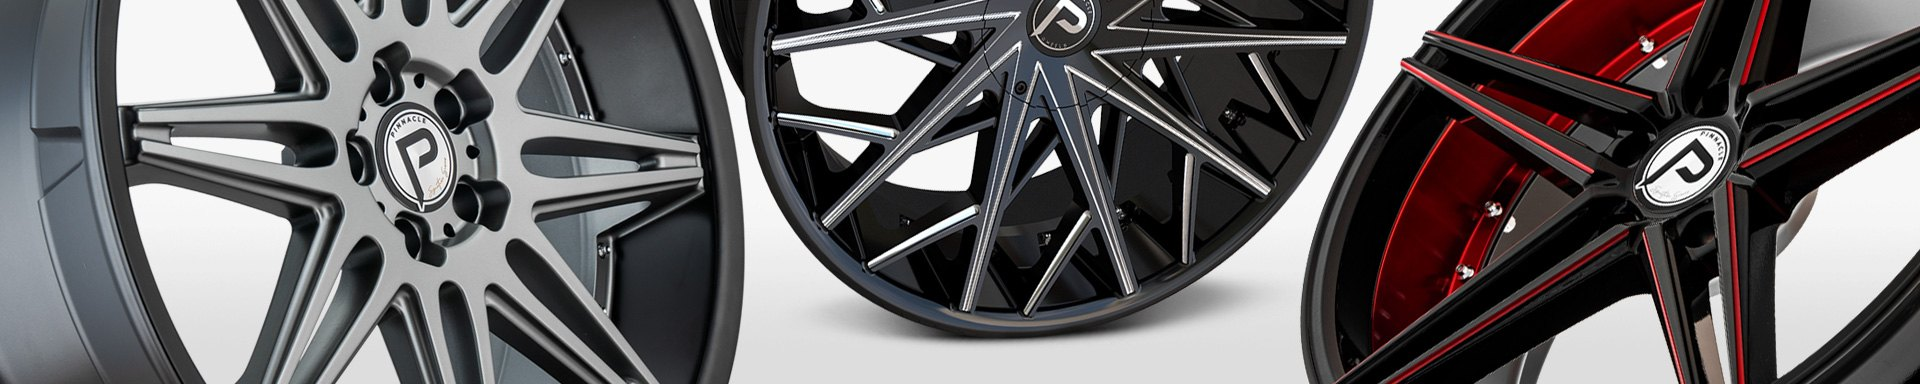 Universal PINNACLE WHEELS & RIMS